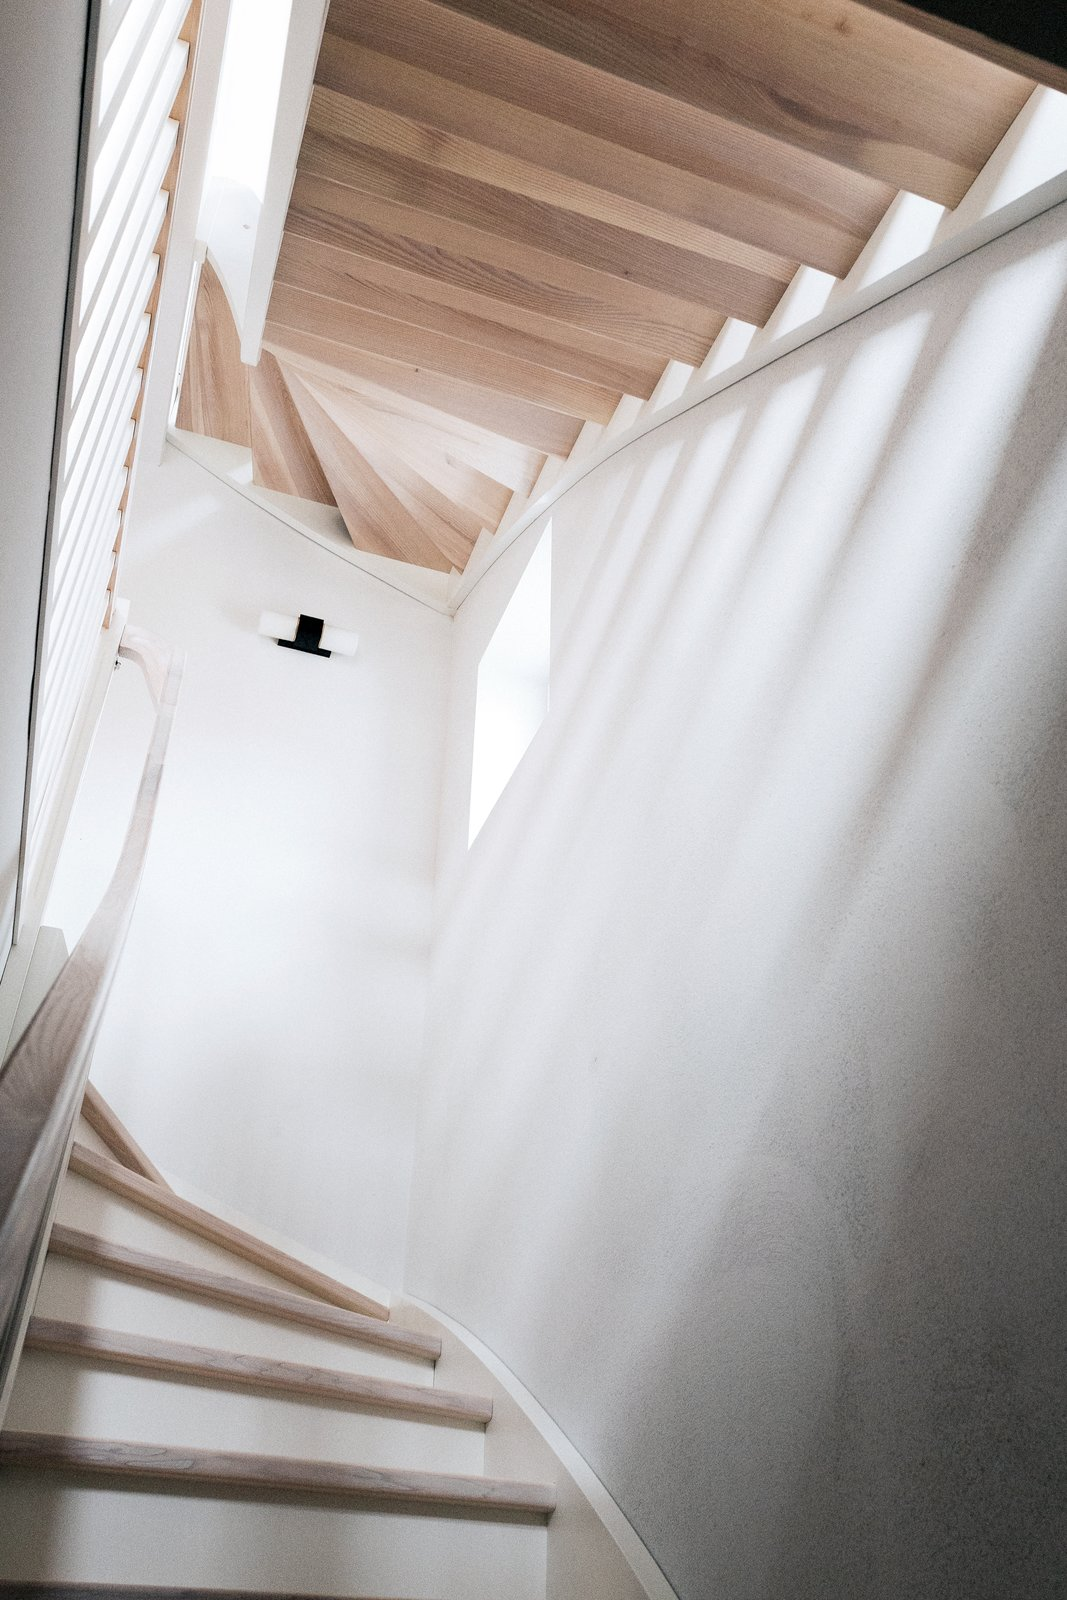 Photo 4 of 12 in A Family's Loft in Poland Gets a Minimalist Renovation That's Both Elegant and Functional